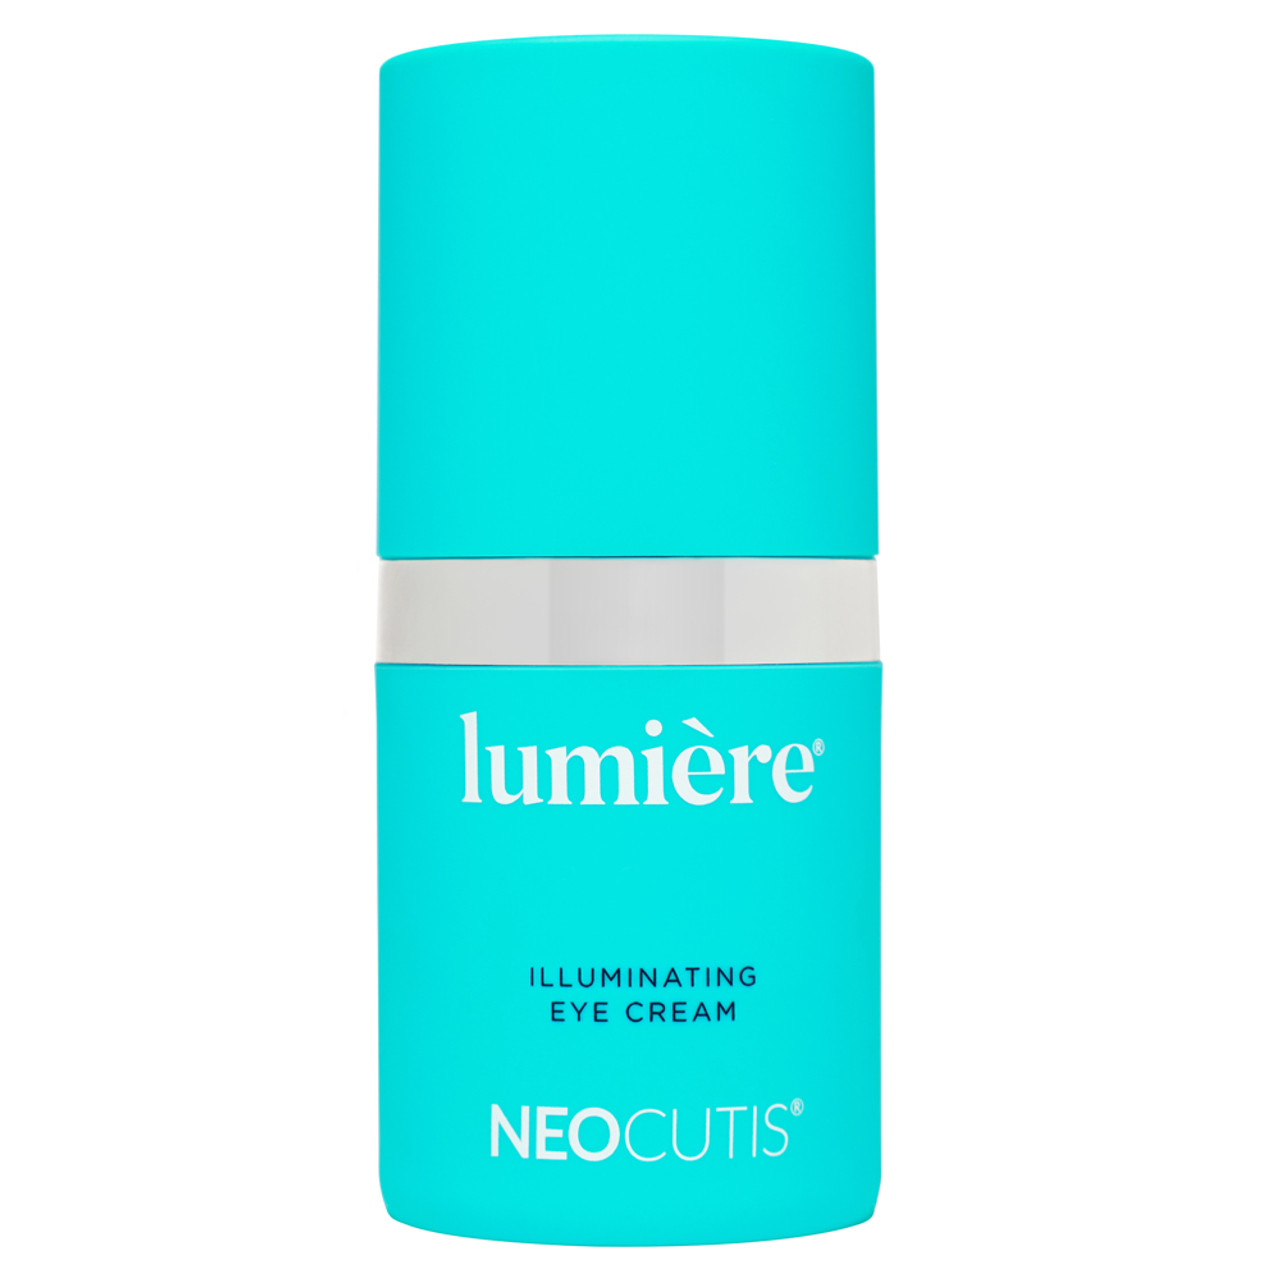 Neocutis Lumiere Bio-restorative Eye Cream with PSP